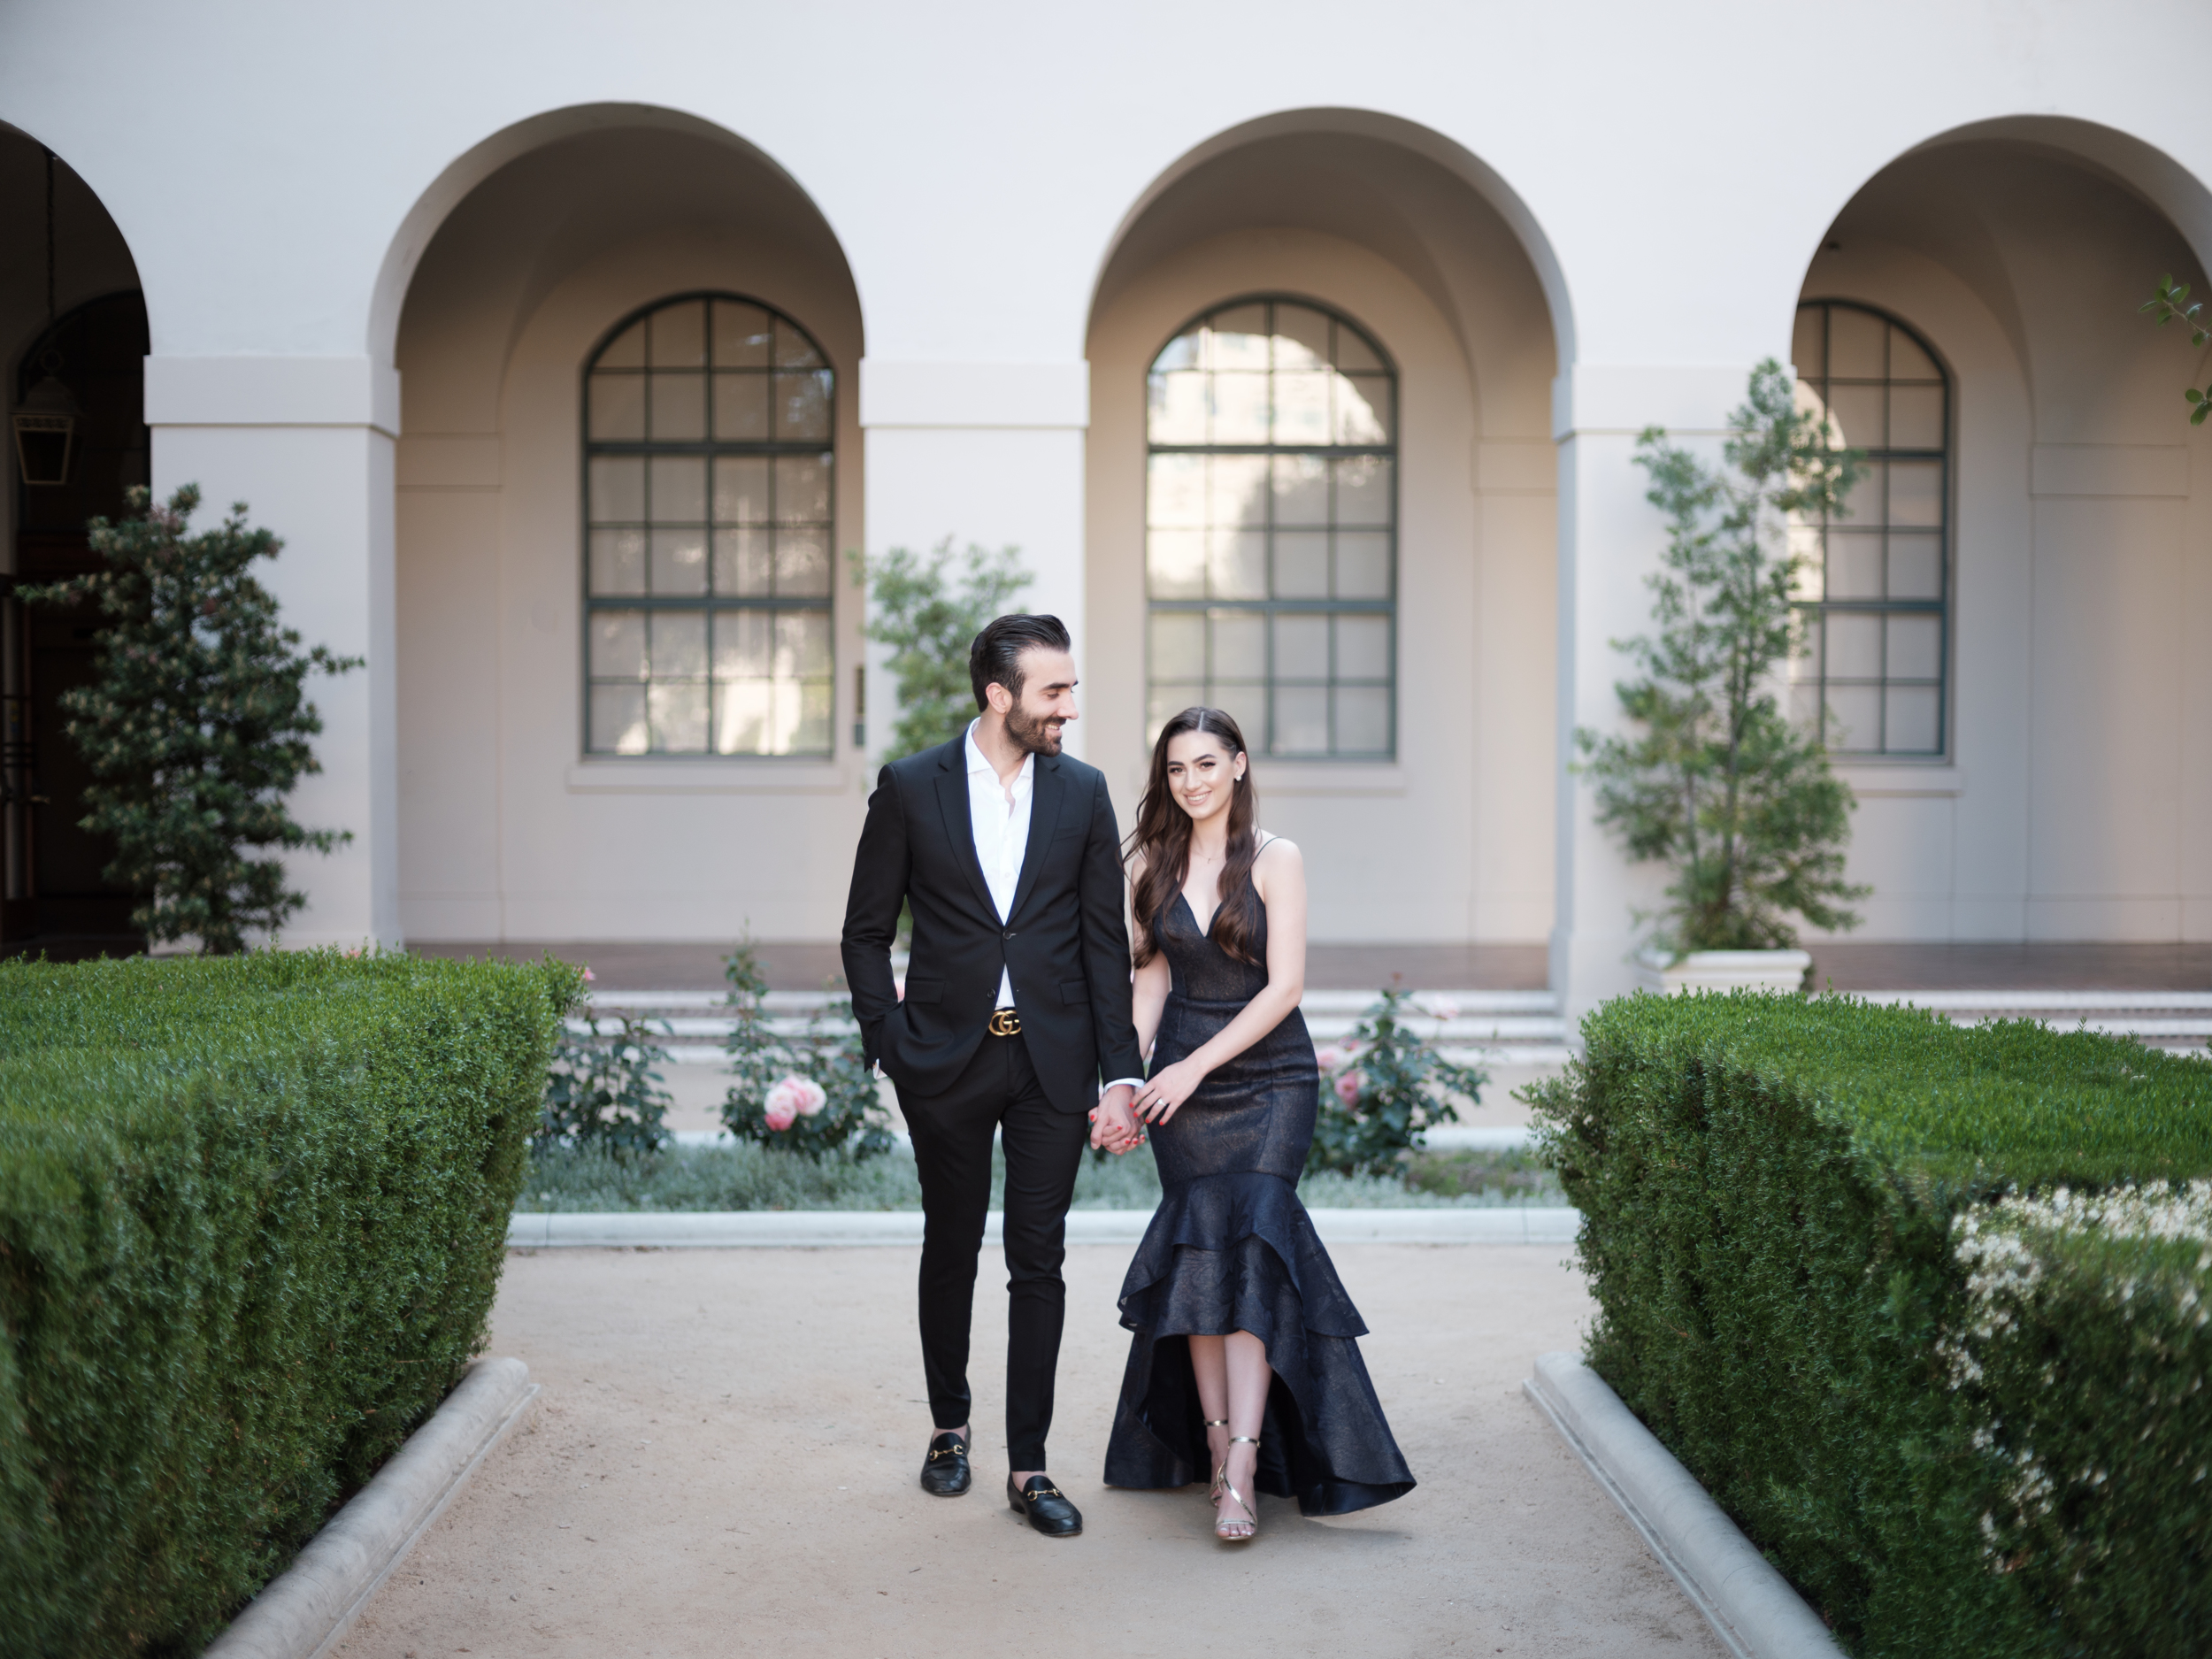 Engaged in Pasadena, first met in Los Angeles for their engagement session. Wedding coming up in California for a summer love.